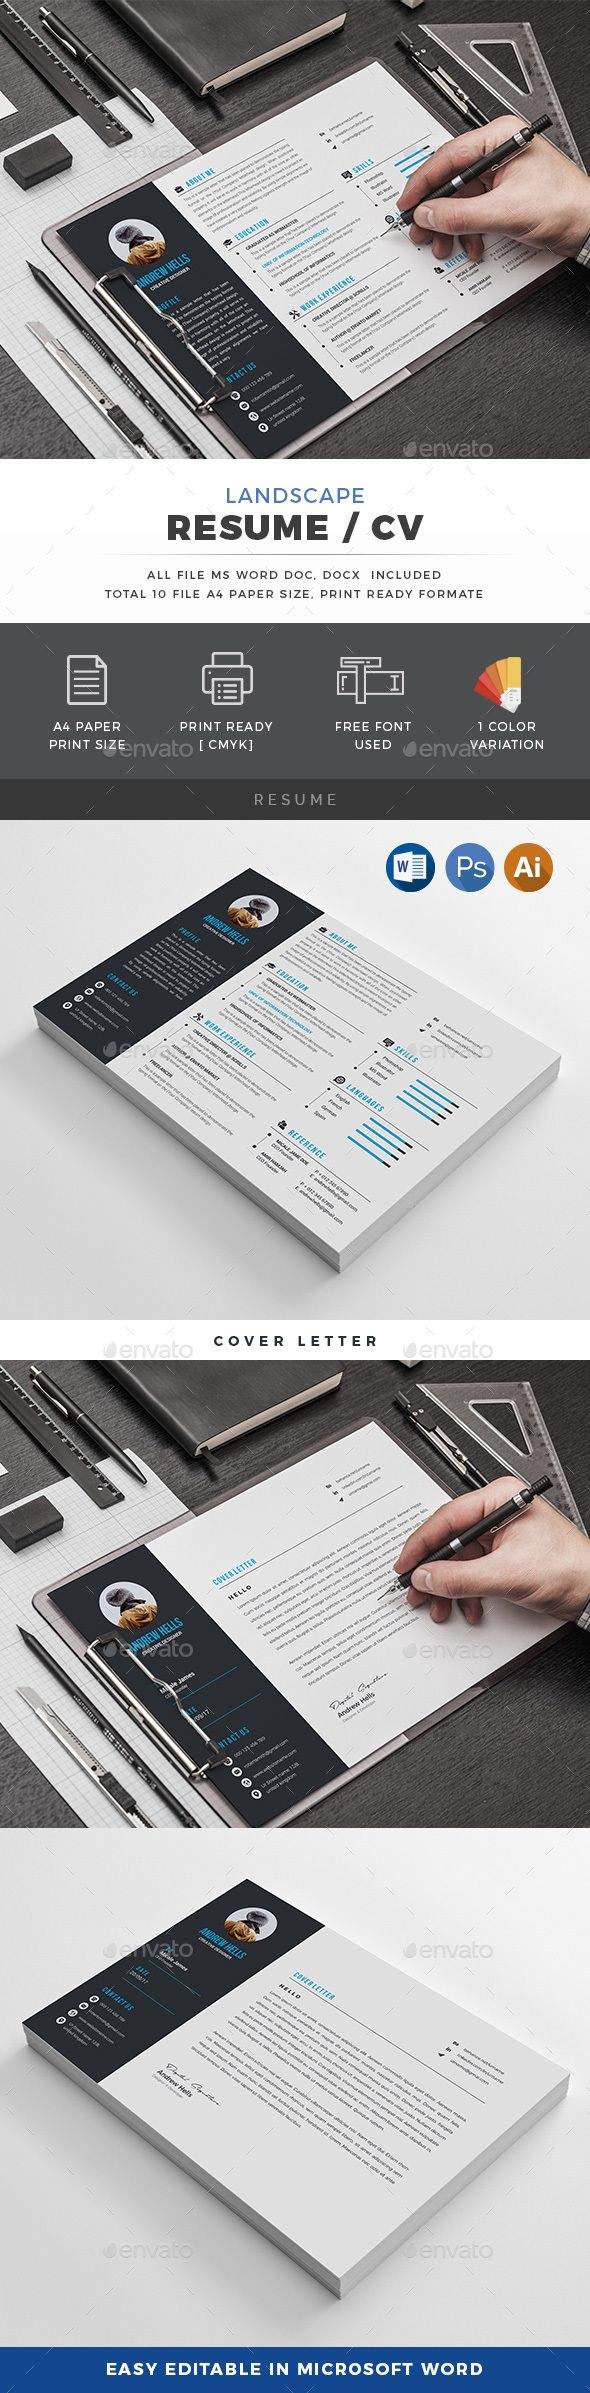 24 best pin interest images on Pinterest | Resume, Resume design and ...